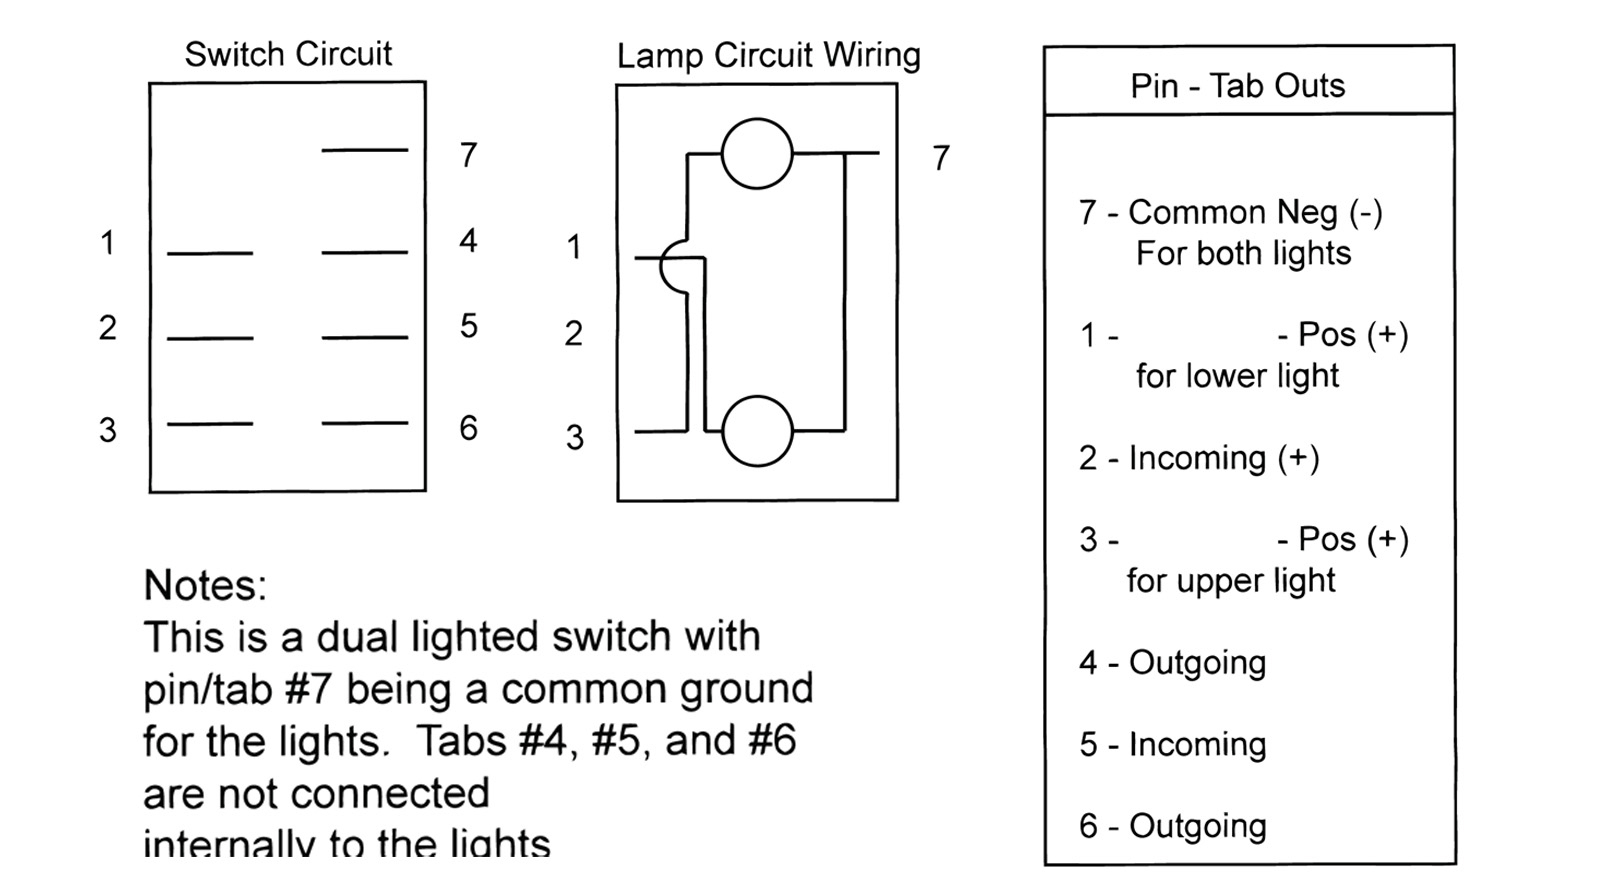 Boat Rocker Switch Wiring Diagram | Wiring Diagram - 4 Pin Rocker Switch Wiring Diagram